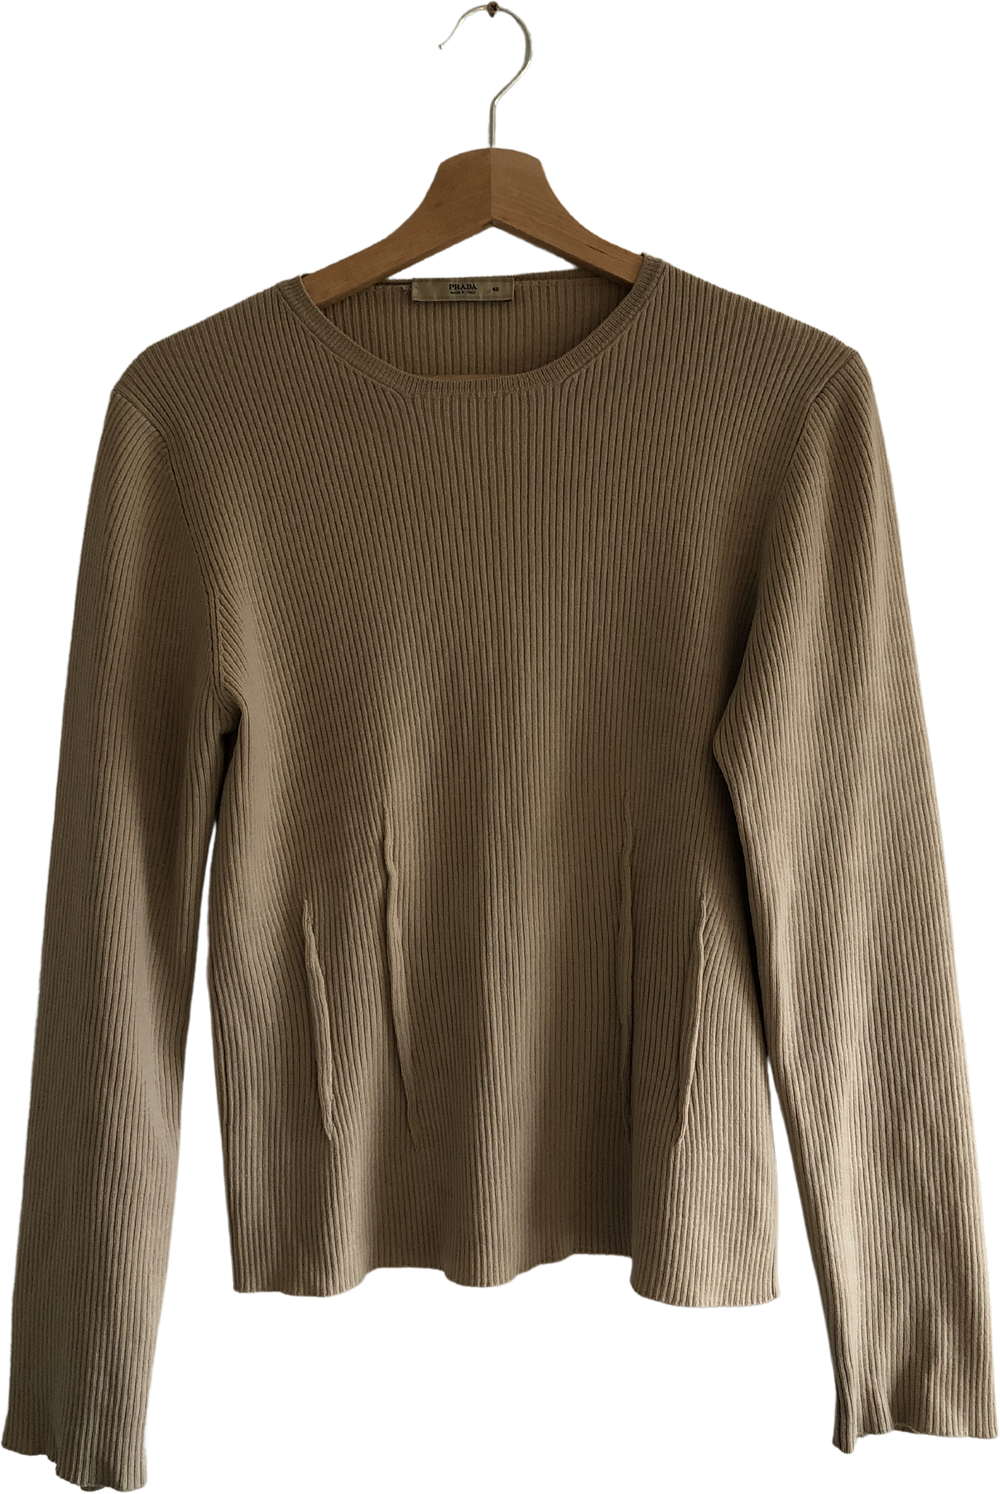 Beige Wool Prada Knit Top